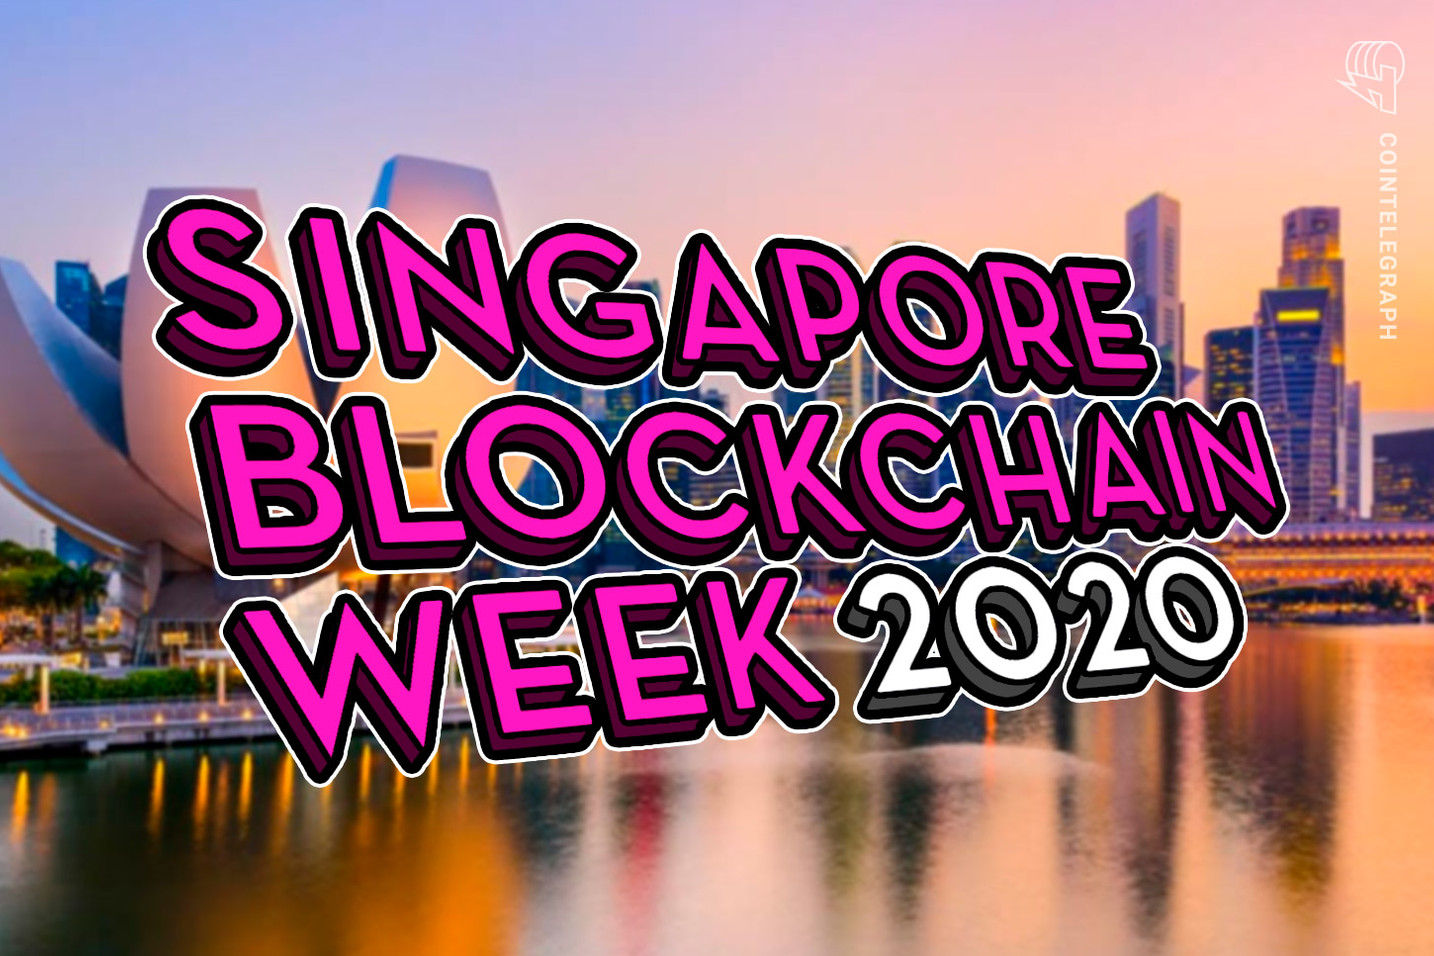 Singapore Blockchain Week 2020 to Assess the New Technology Reality